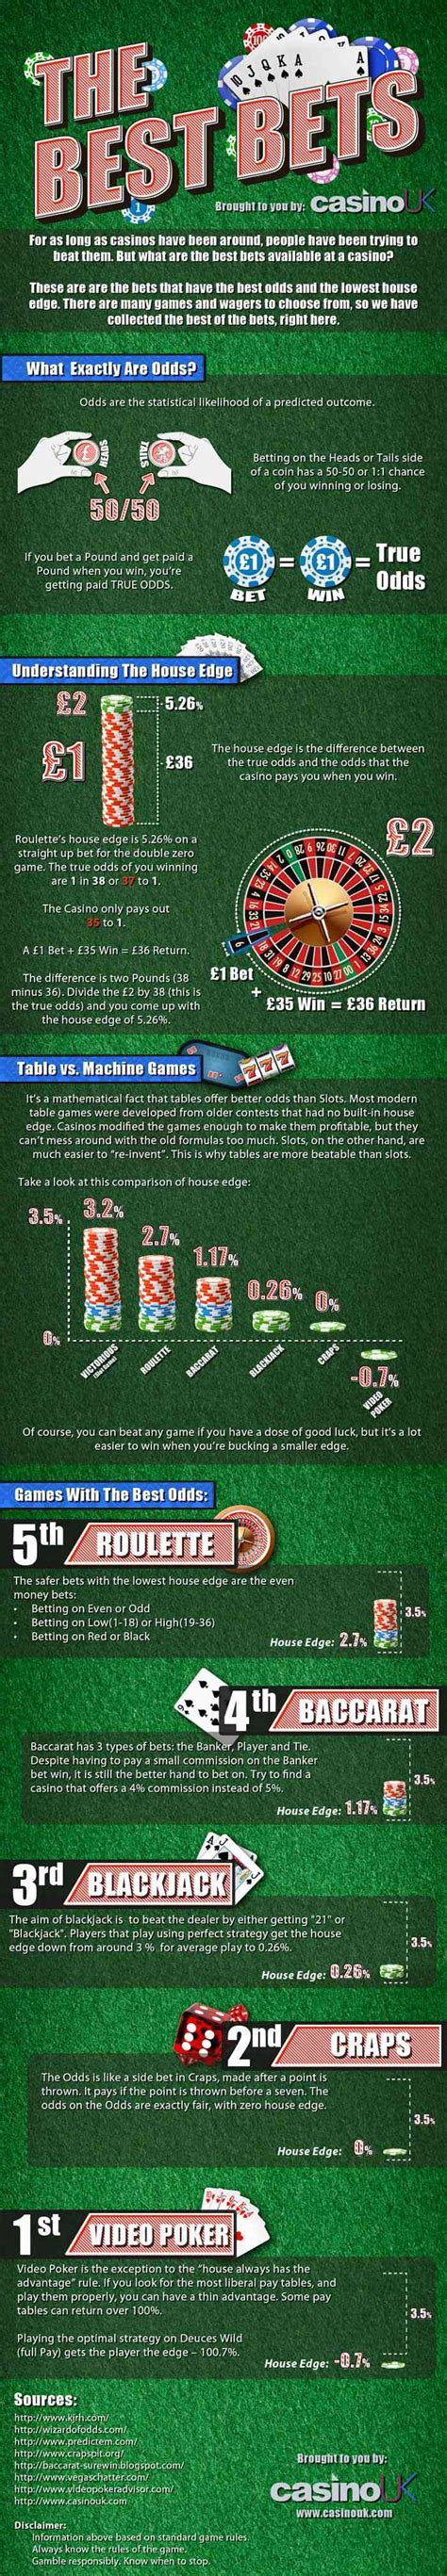 best odds what are the best bets available at a casino infographic